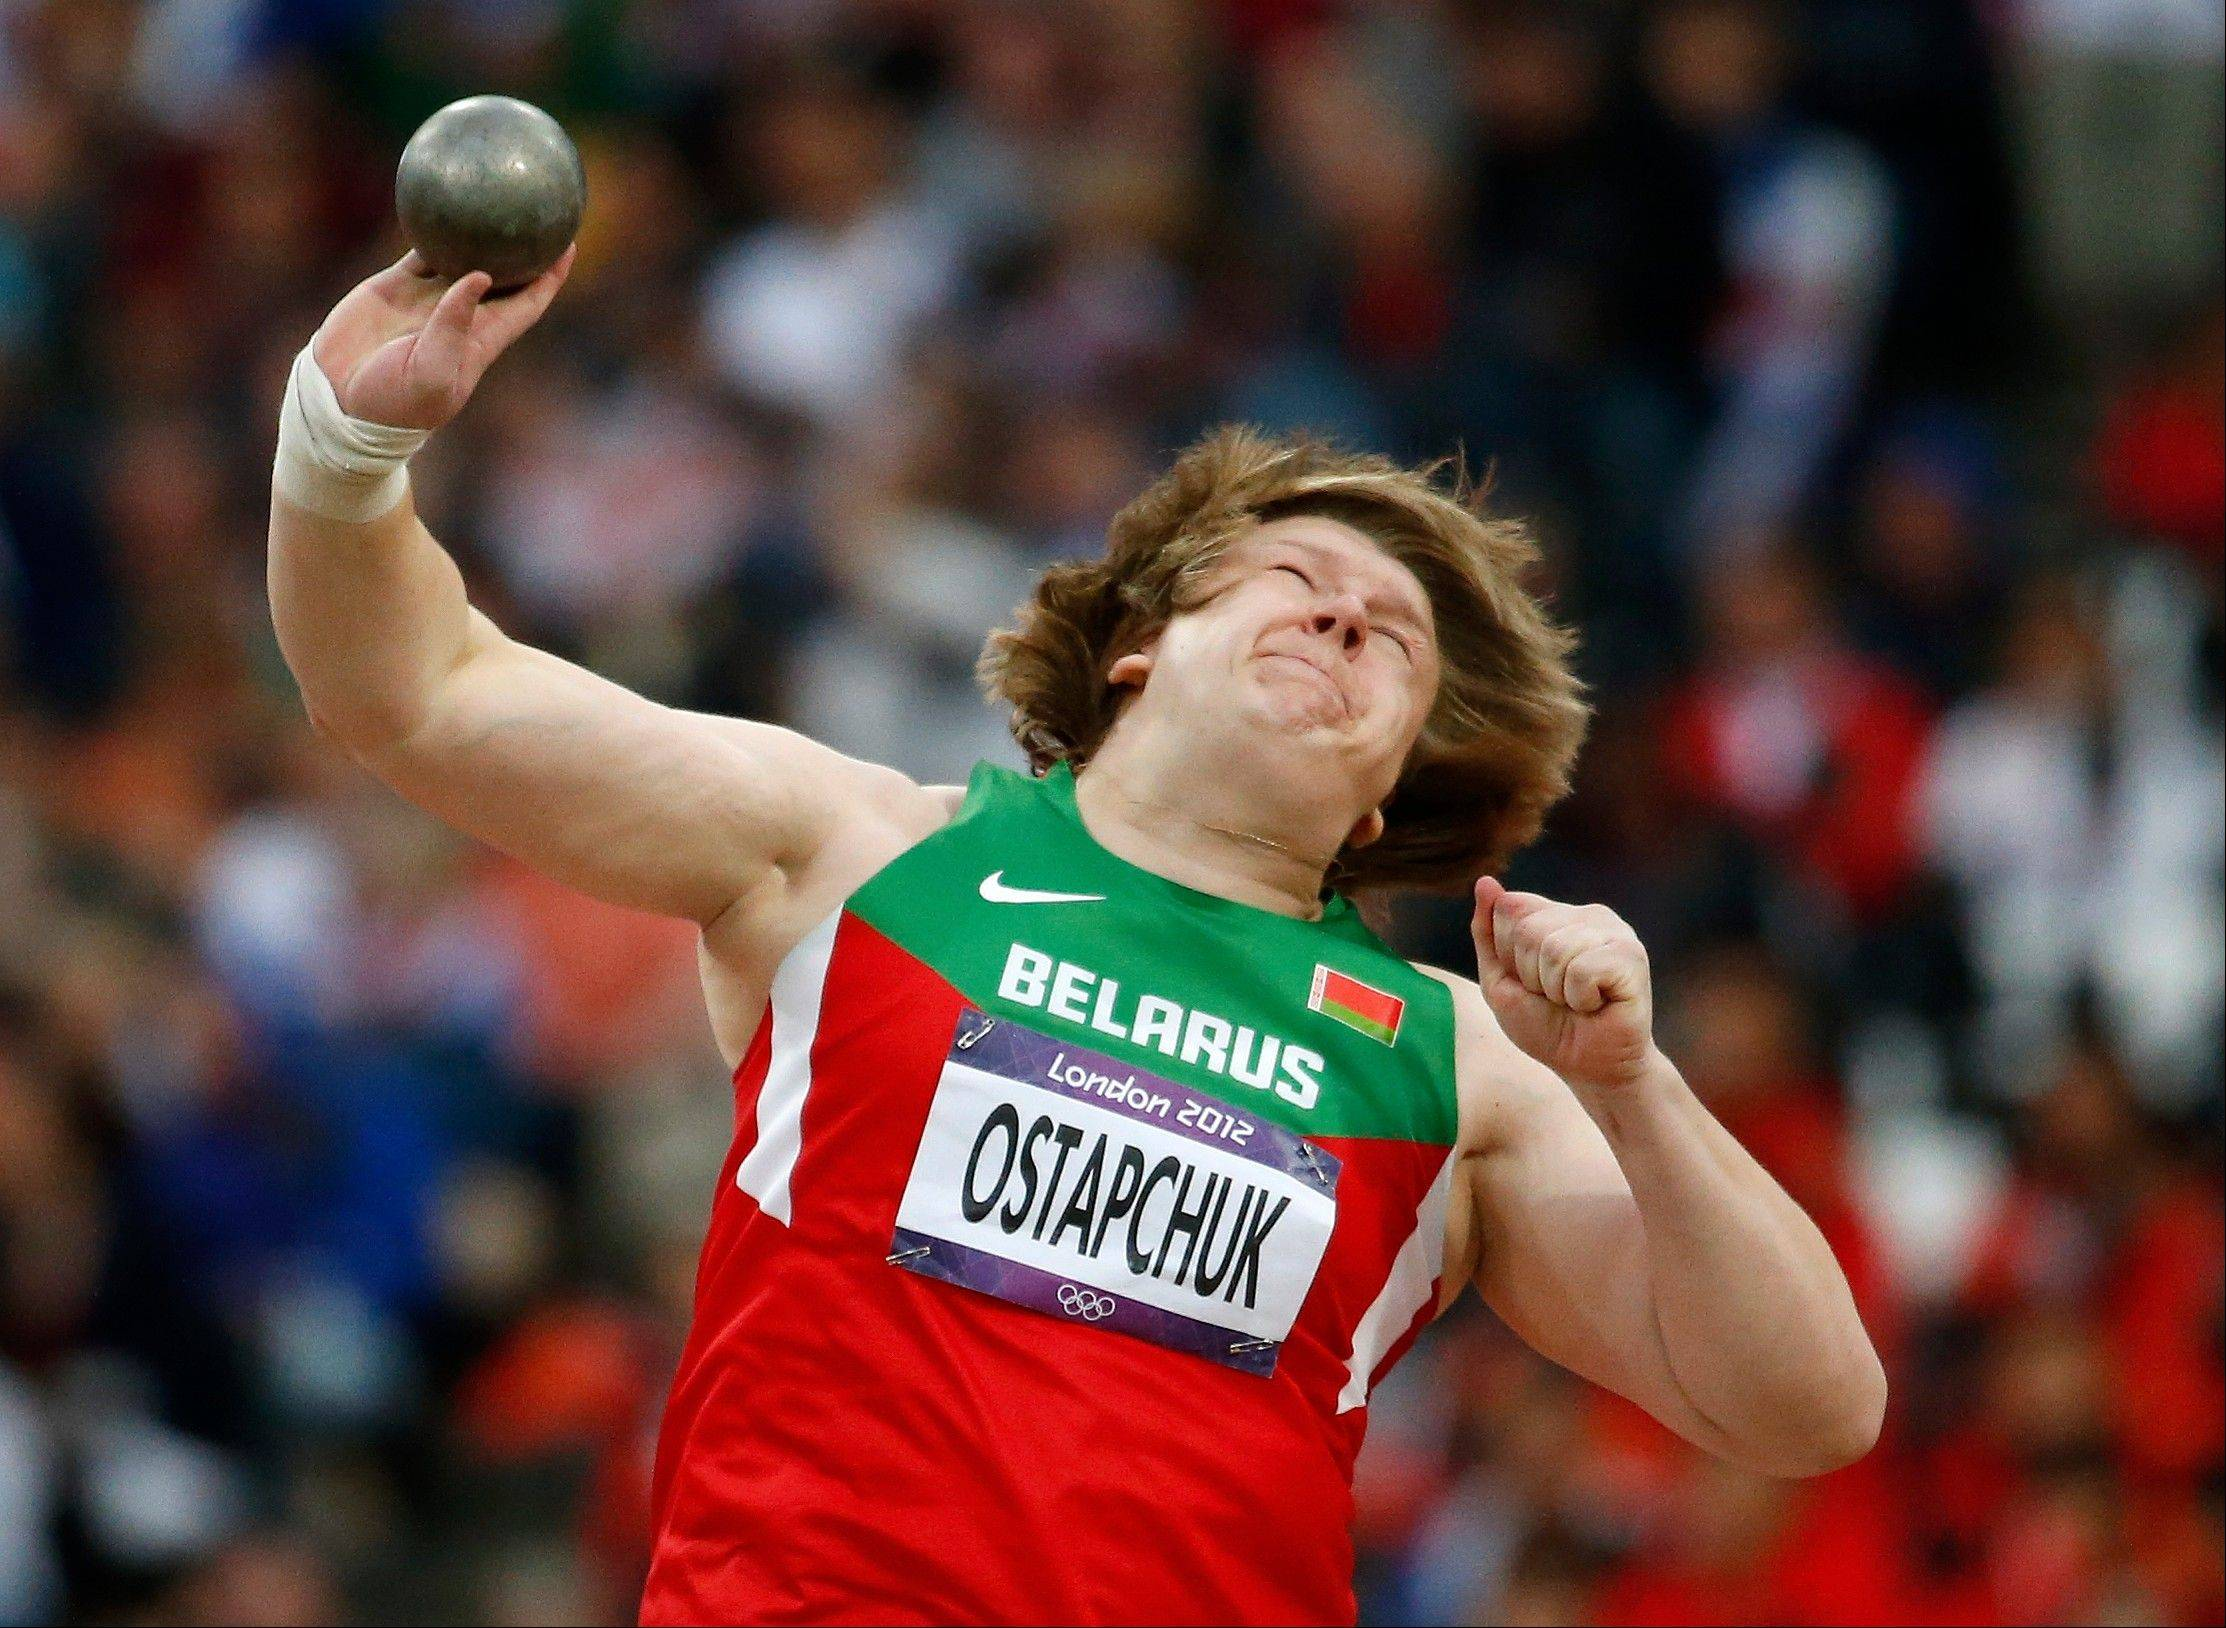 Belarus� Nadzeya Ostapchuk became the first athlete to be stripped of a medal at the London Olympics after her gold in the women�s shot put was withdrawn for doping. The International Olympic Committee said Monday that Ostapchuk tested positive for the steroid metenolone.